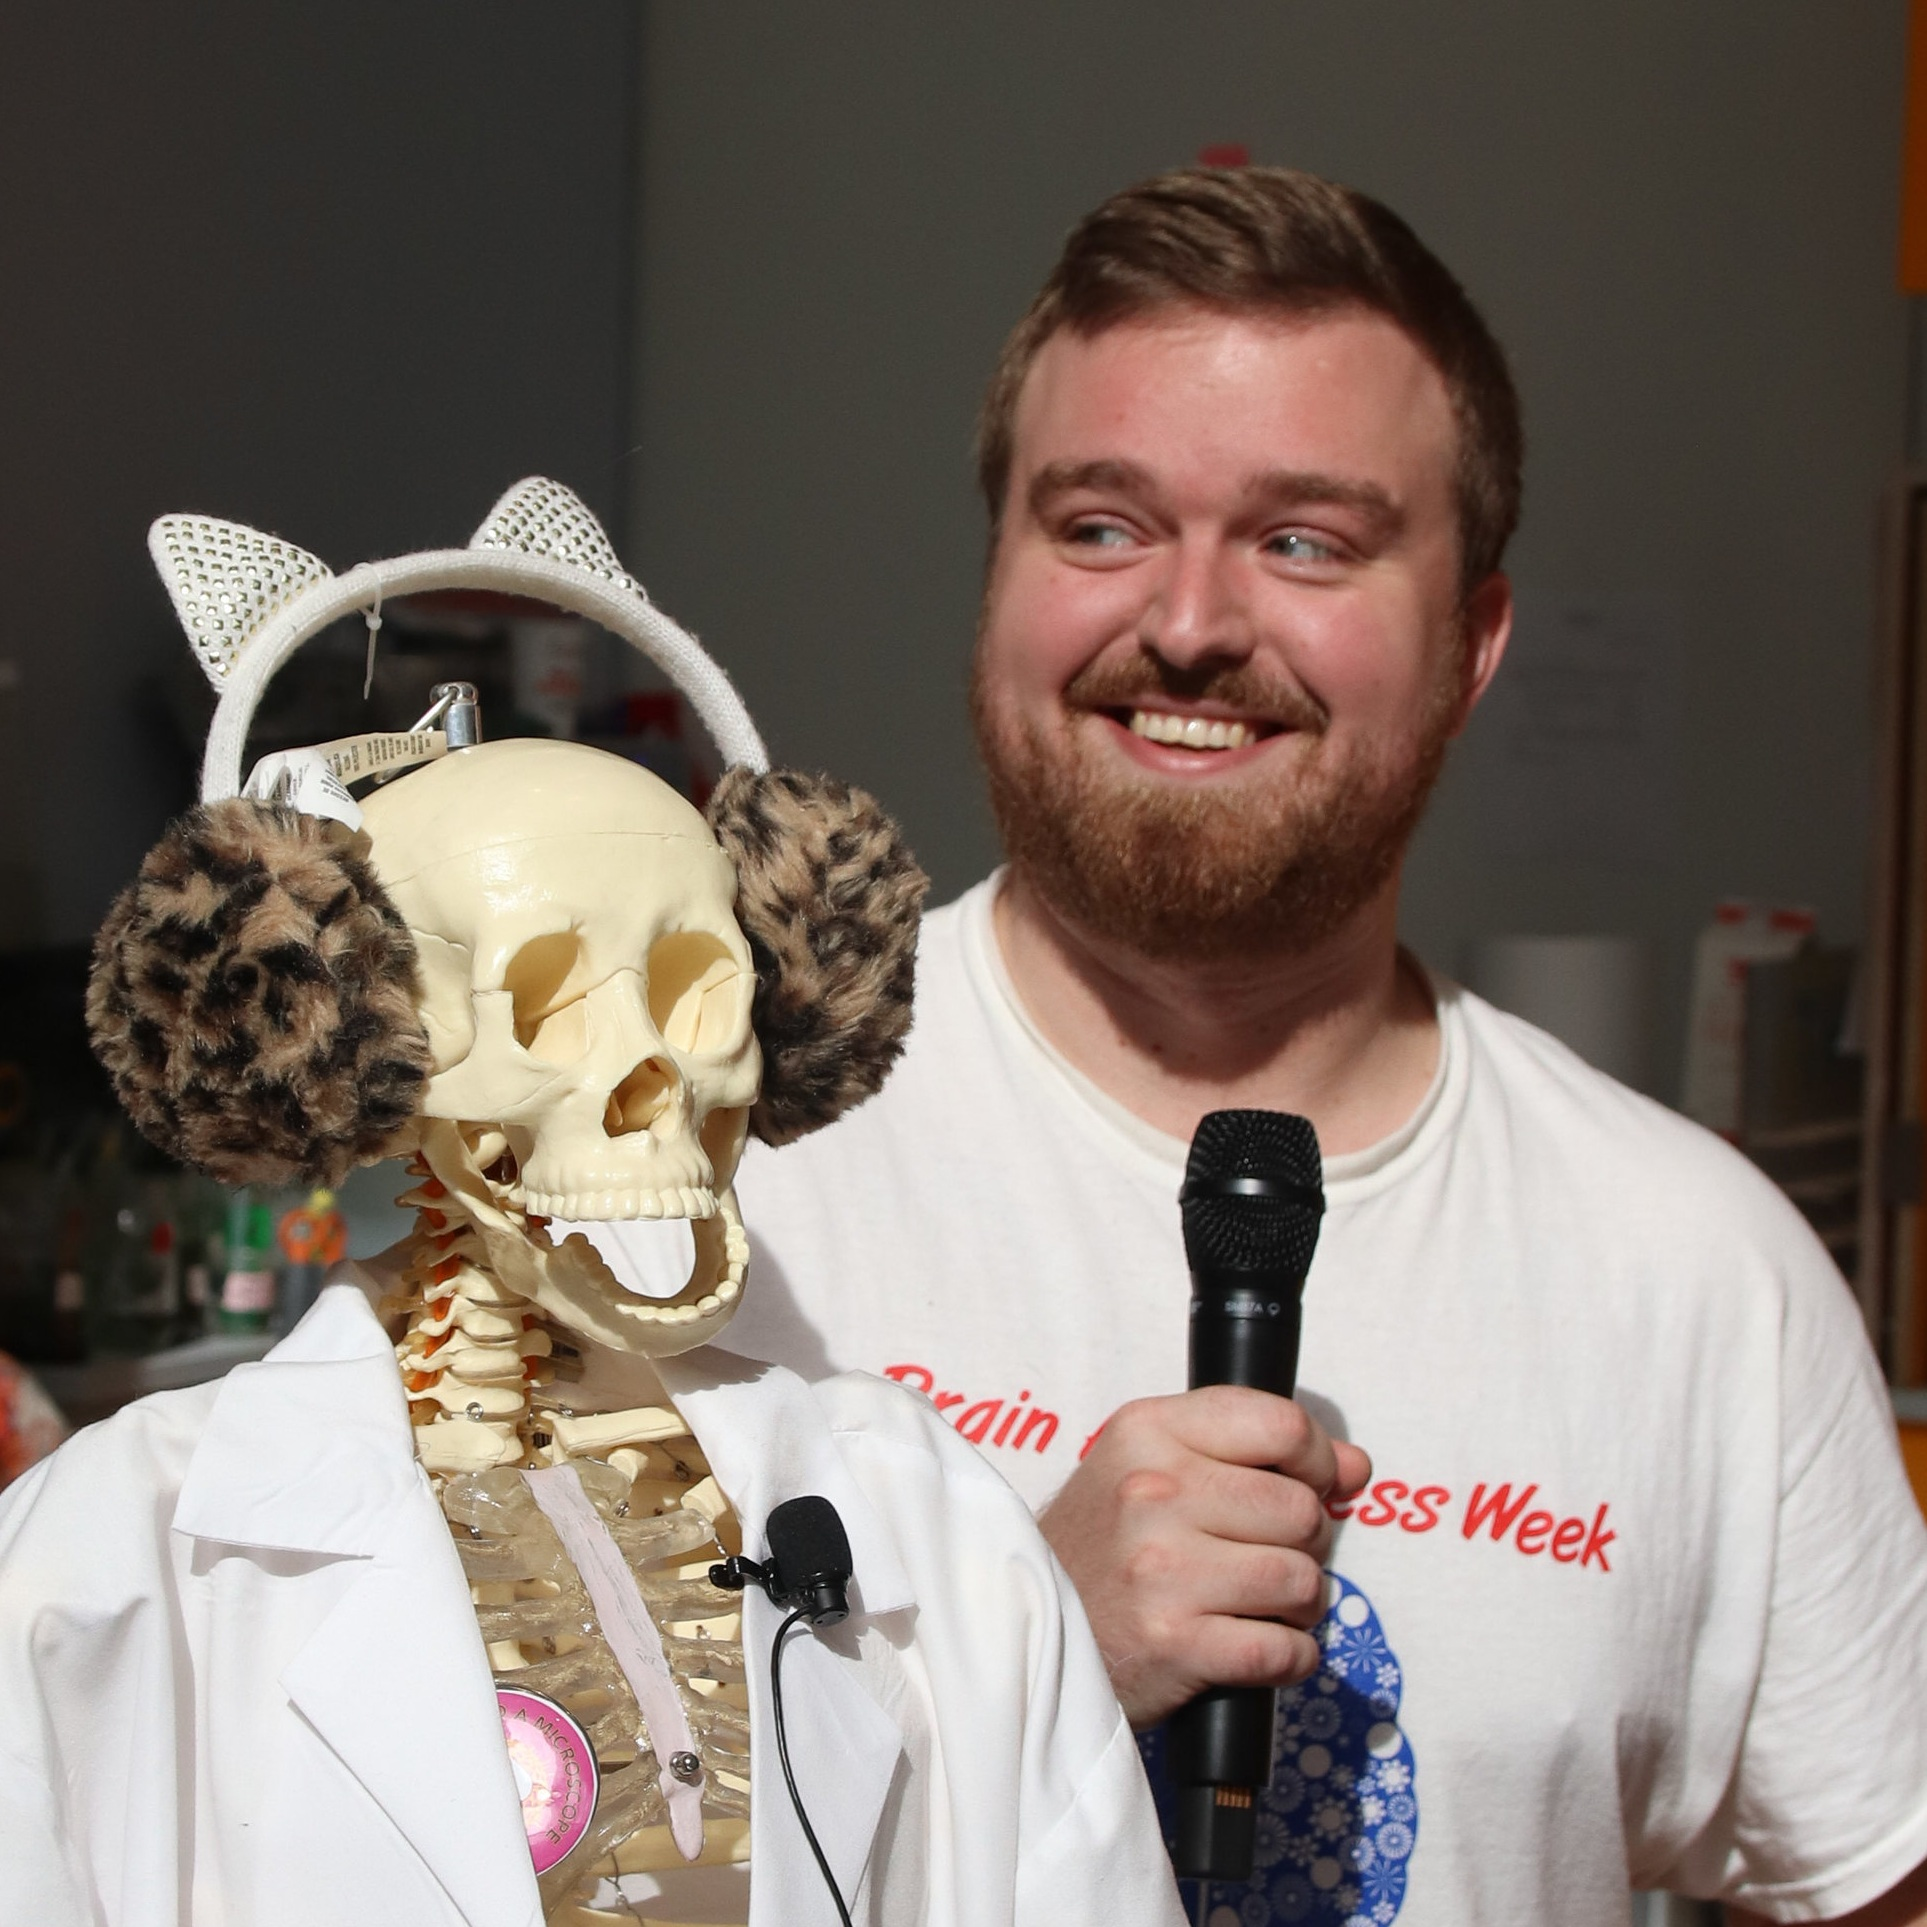 Noah Guiberson@arksandsciences - Noah got his start writing and hosting trivia nights in the rugged pub quiz circuits of Baltimore and New York. A neuroscientist by day, he seeks to answer the greatest trivia question of them all: How does the brain work?